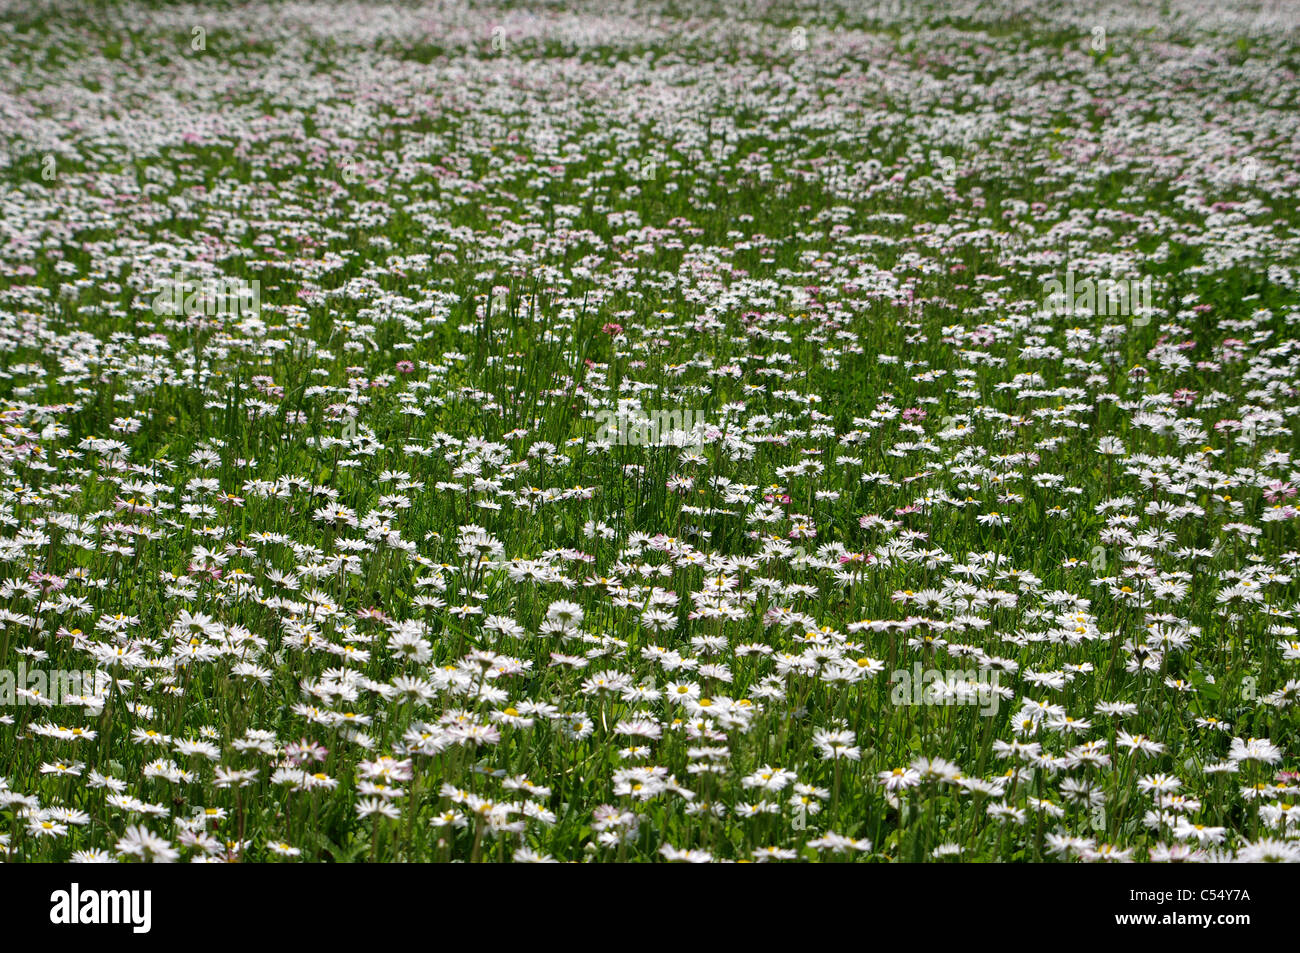 Spring meadow with daisies natsafteli. - Stock Image